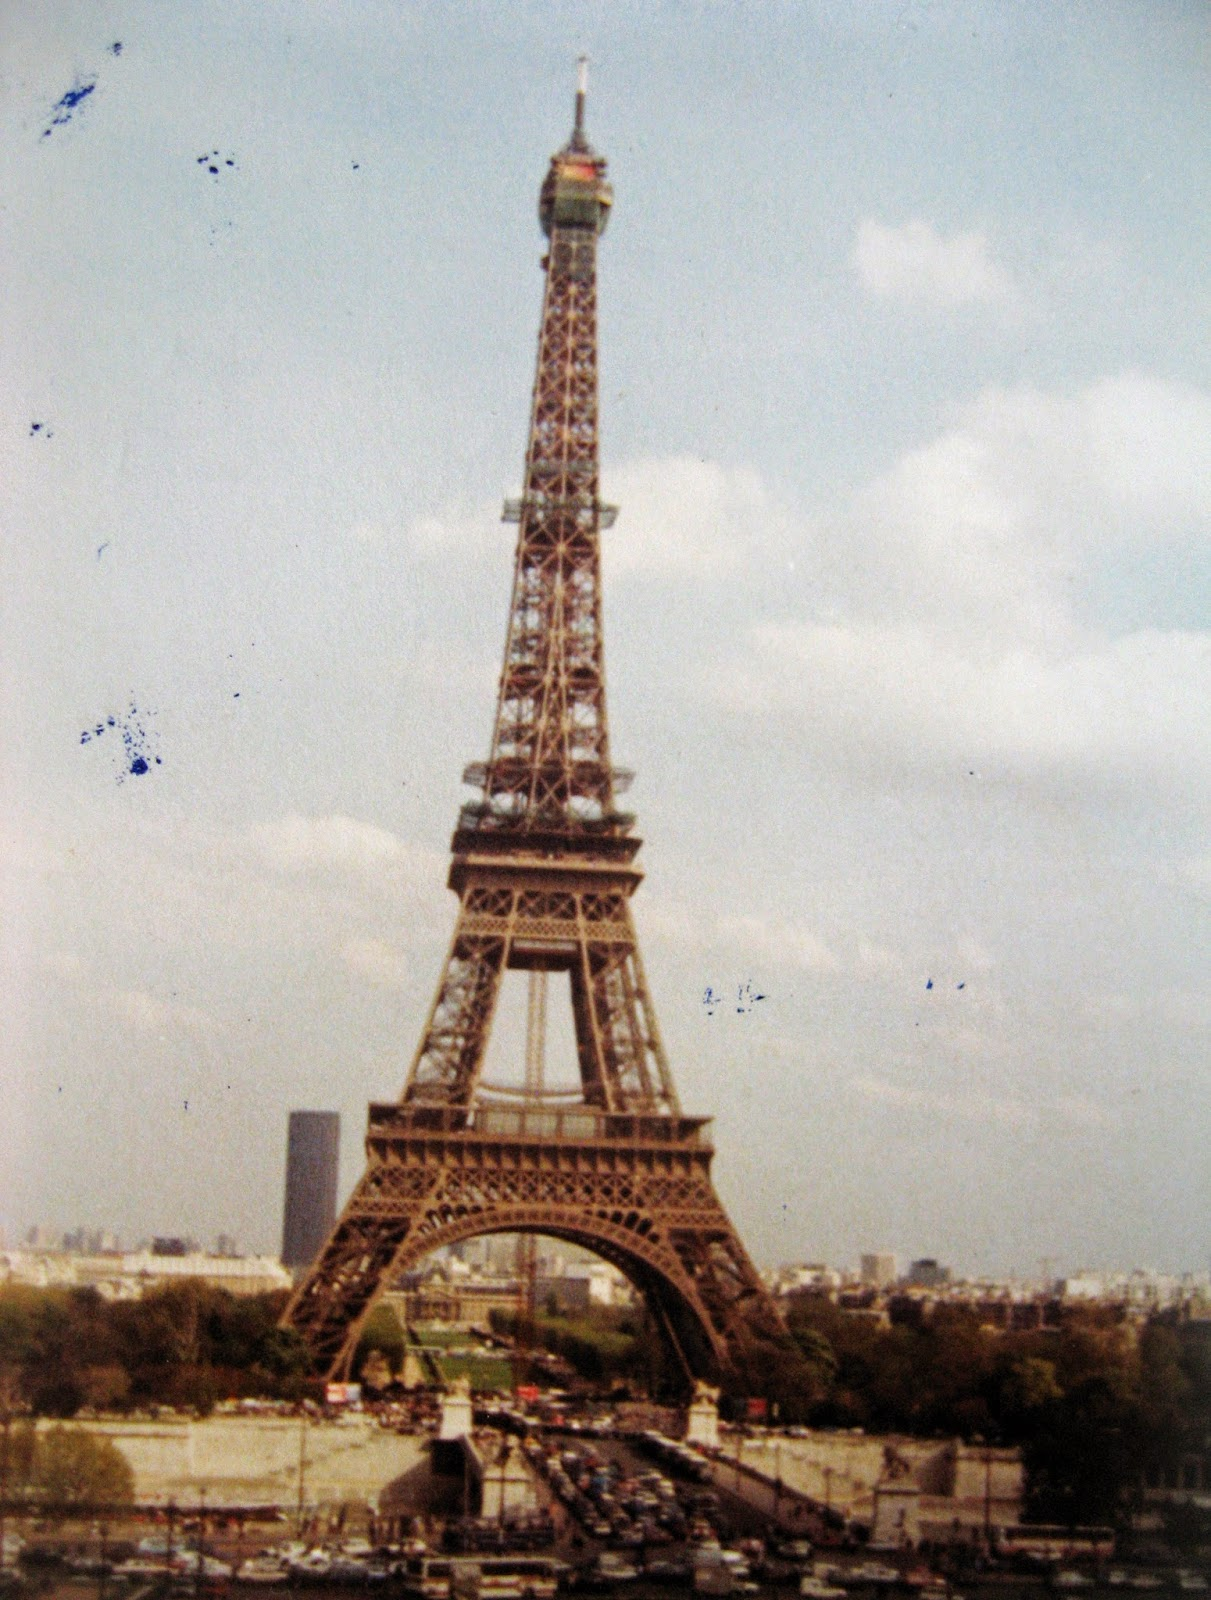 Tommy Mondello & Billy Scire at the Eiffel Tower Paris, France 1983